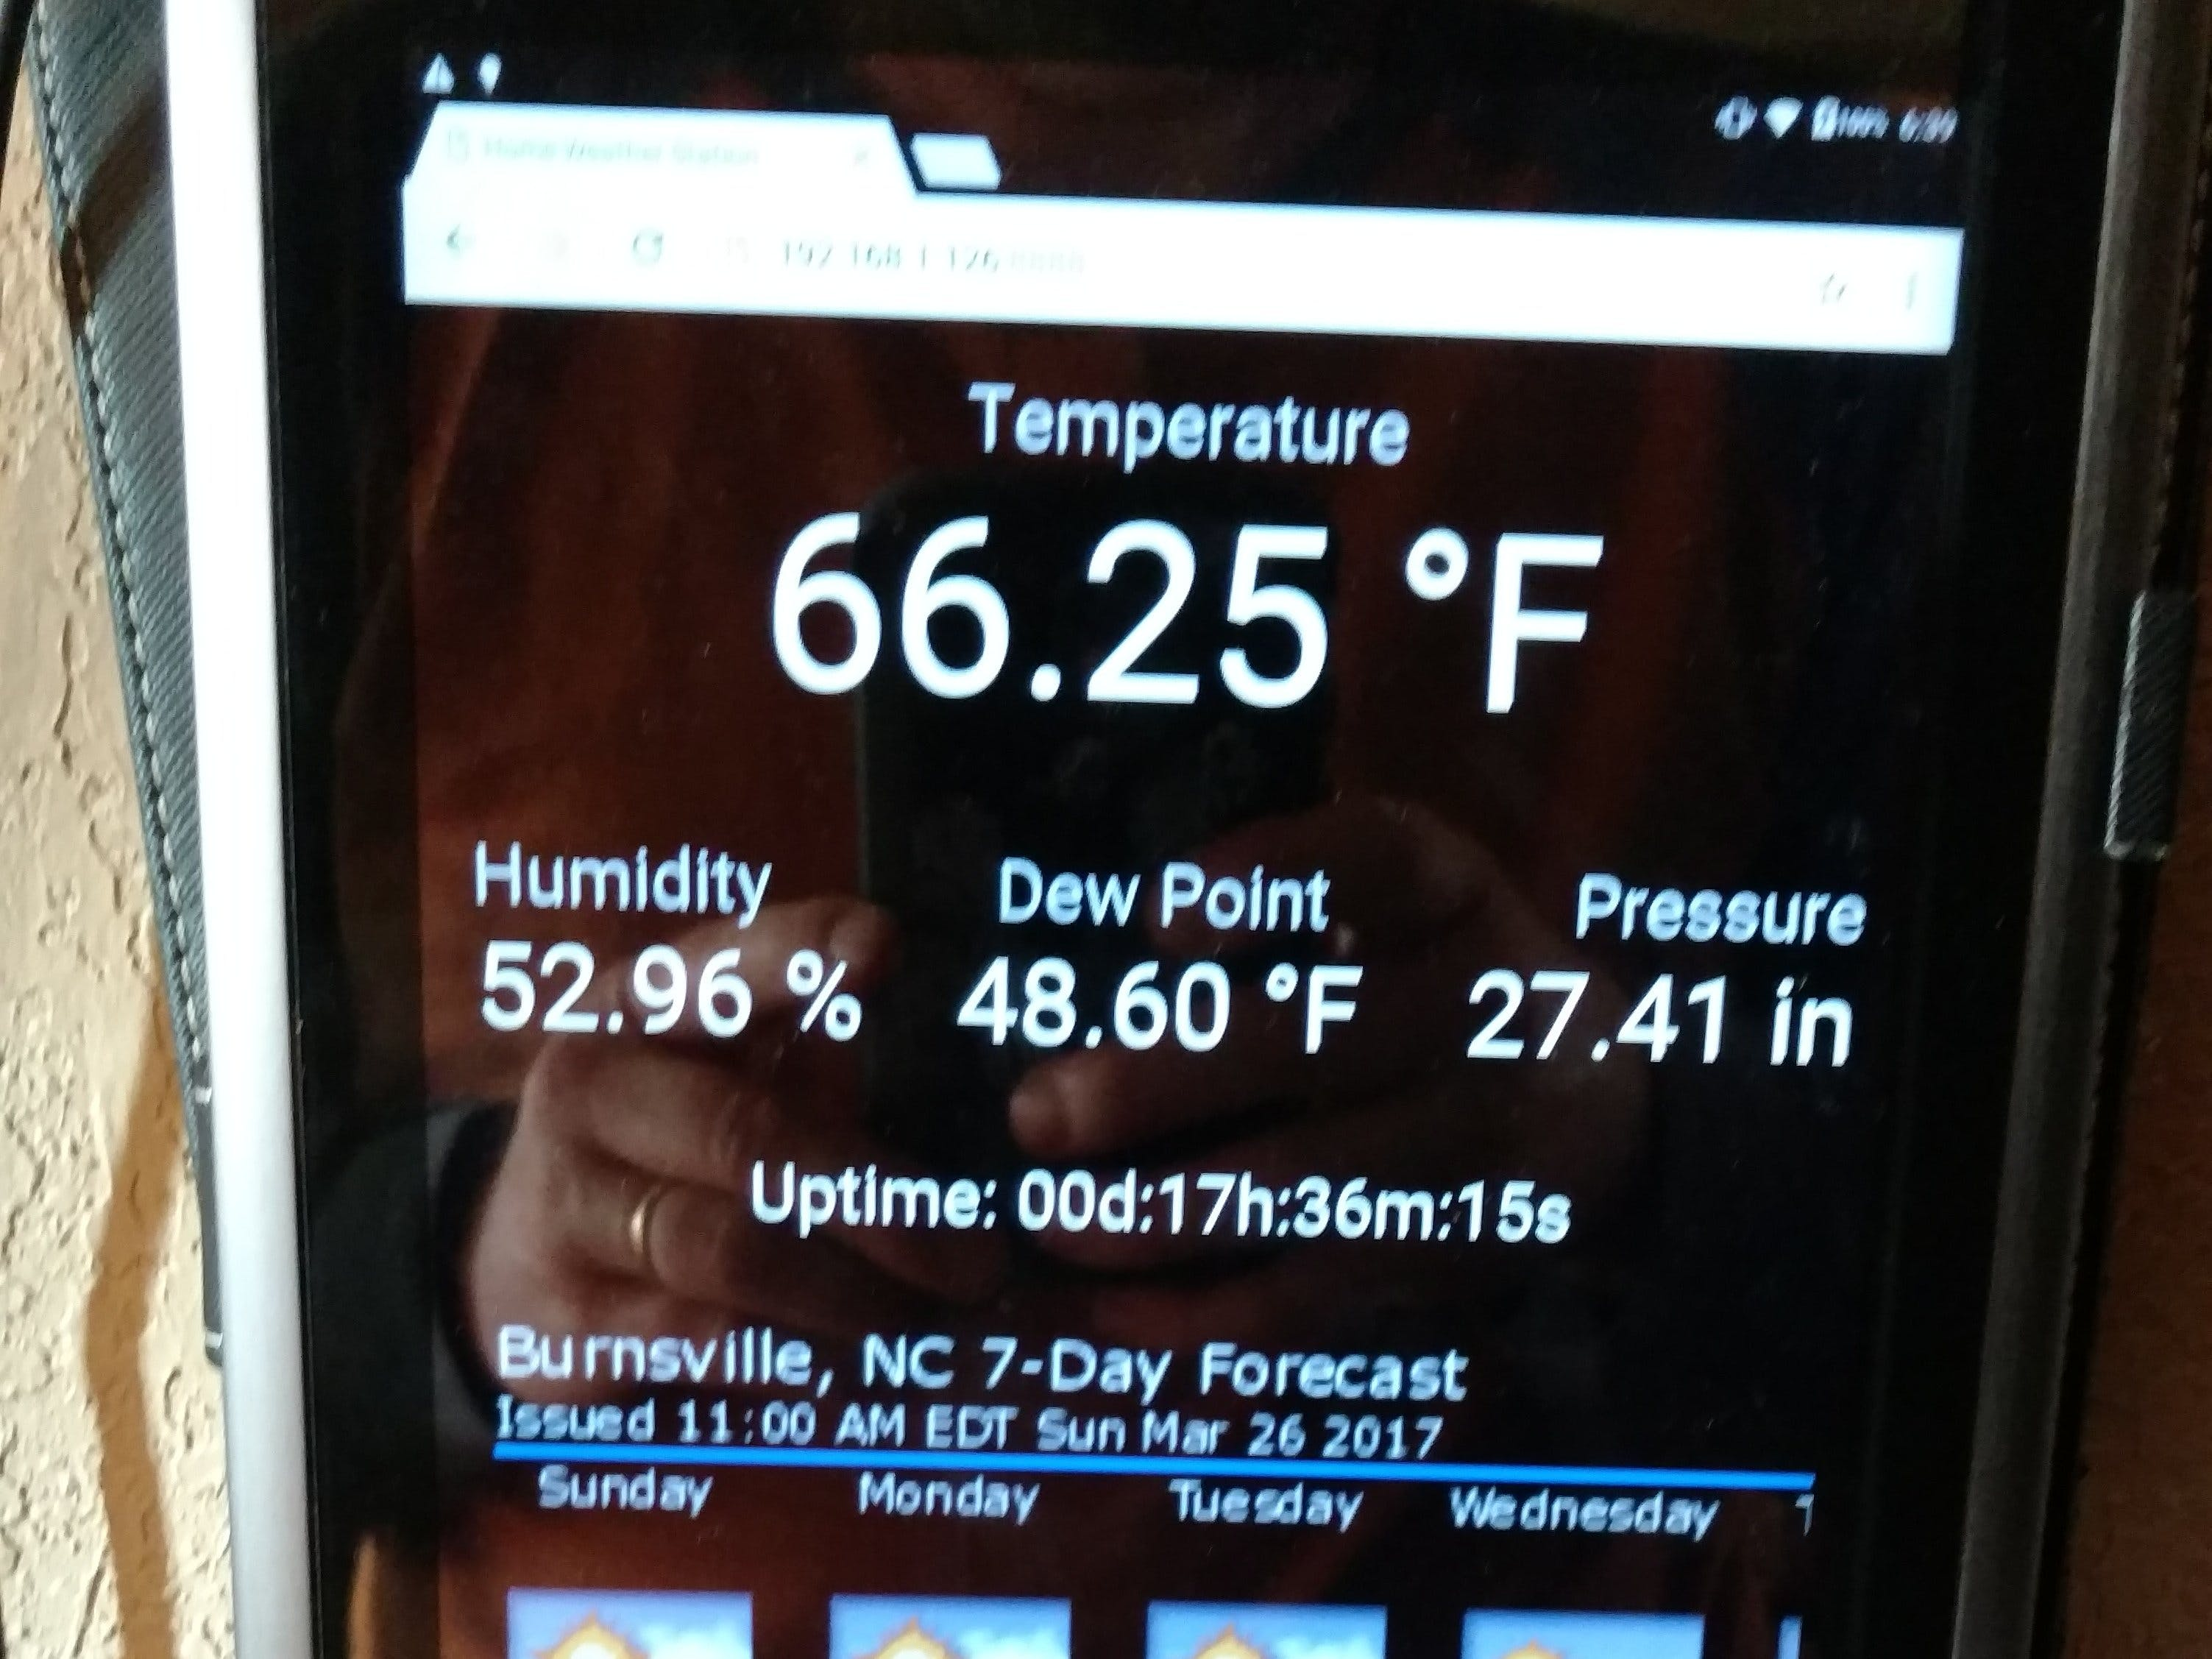 NodeMCU Home Weather Station with Websocket